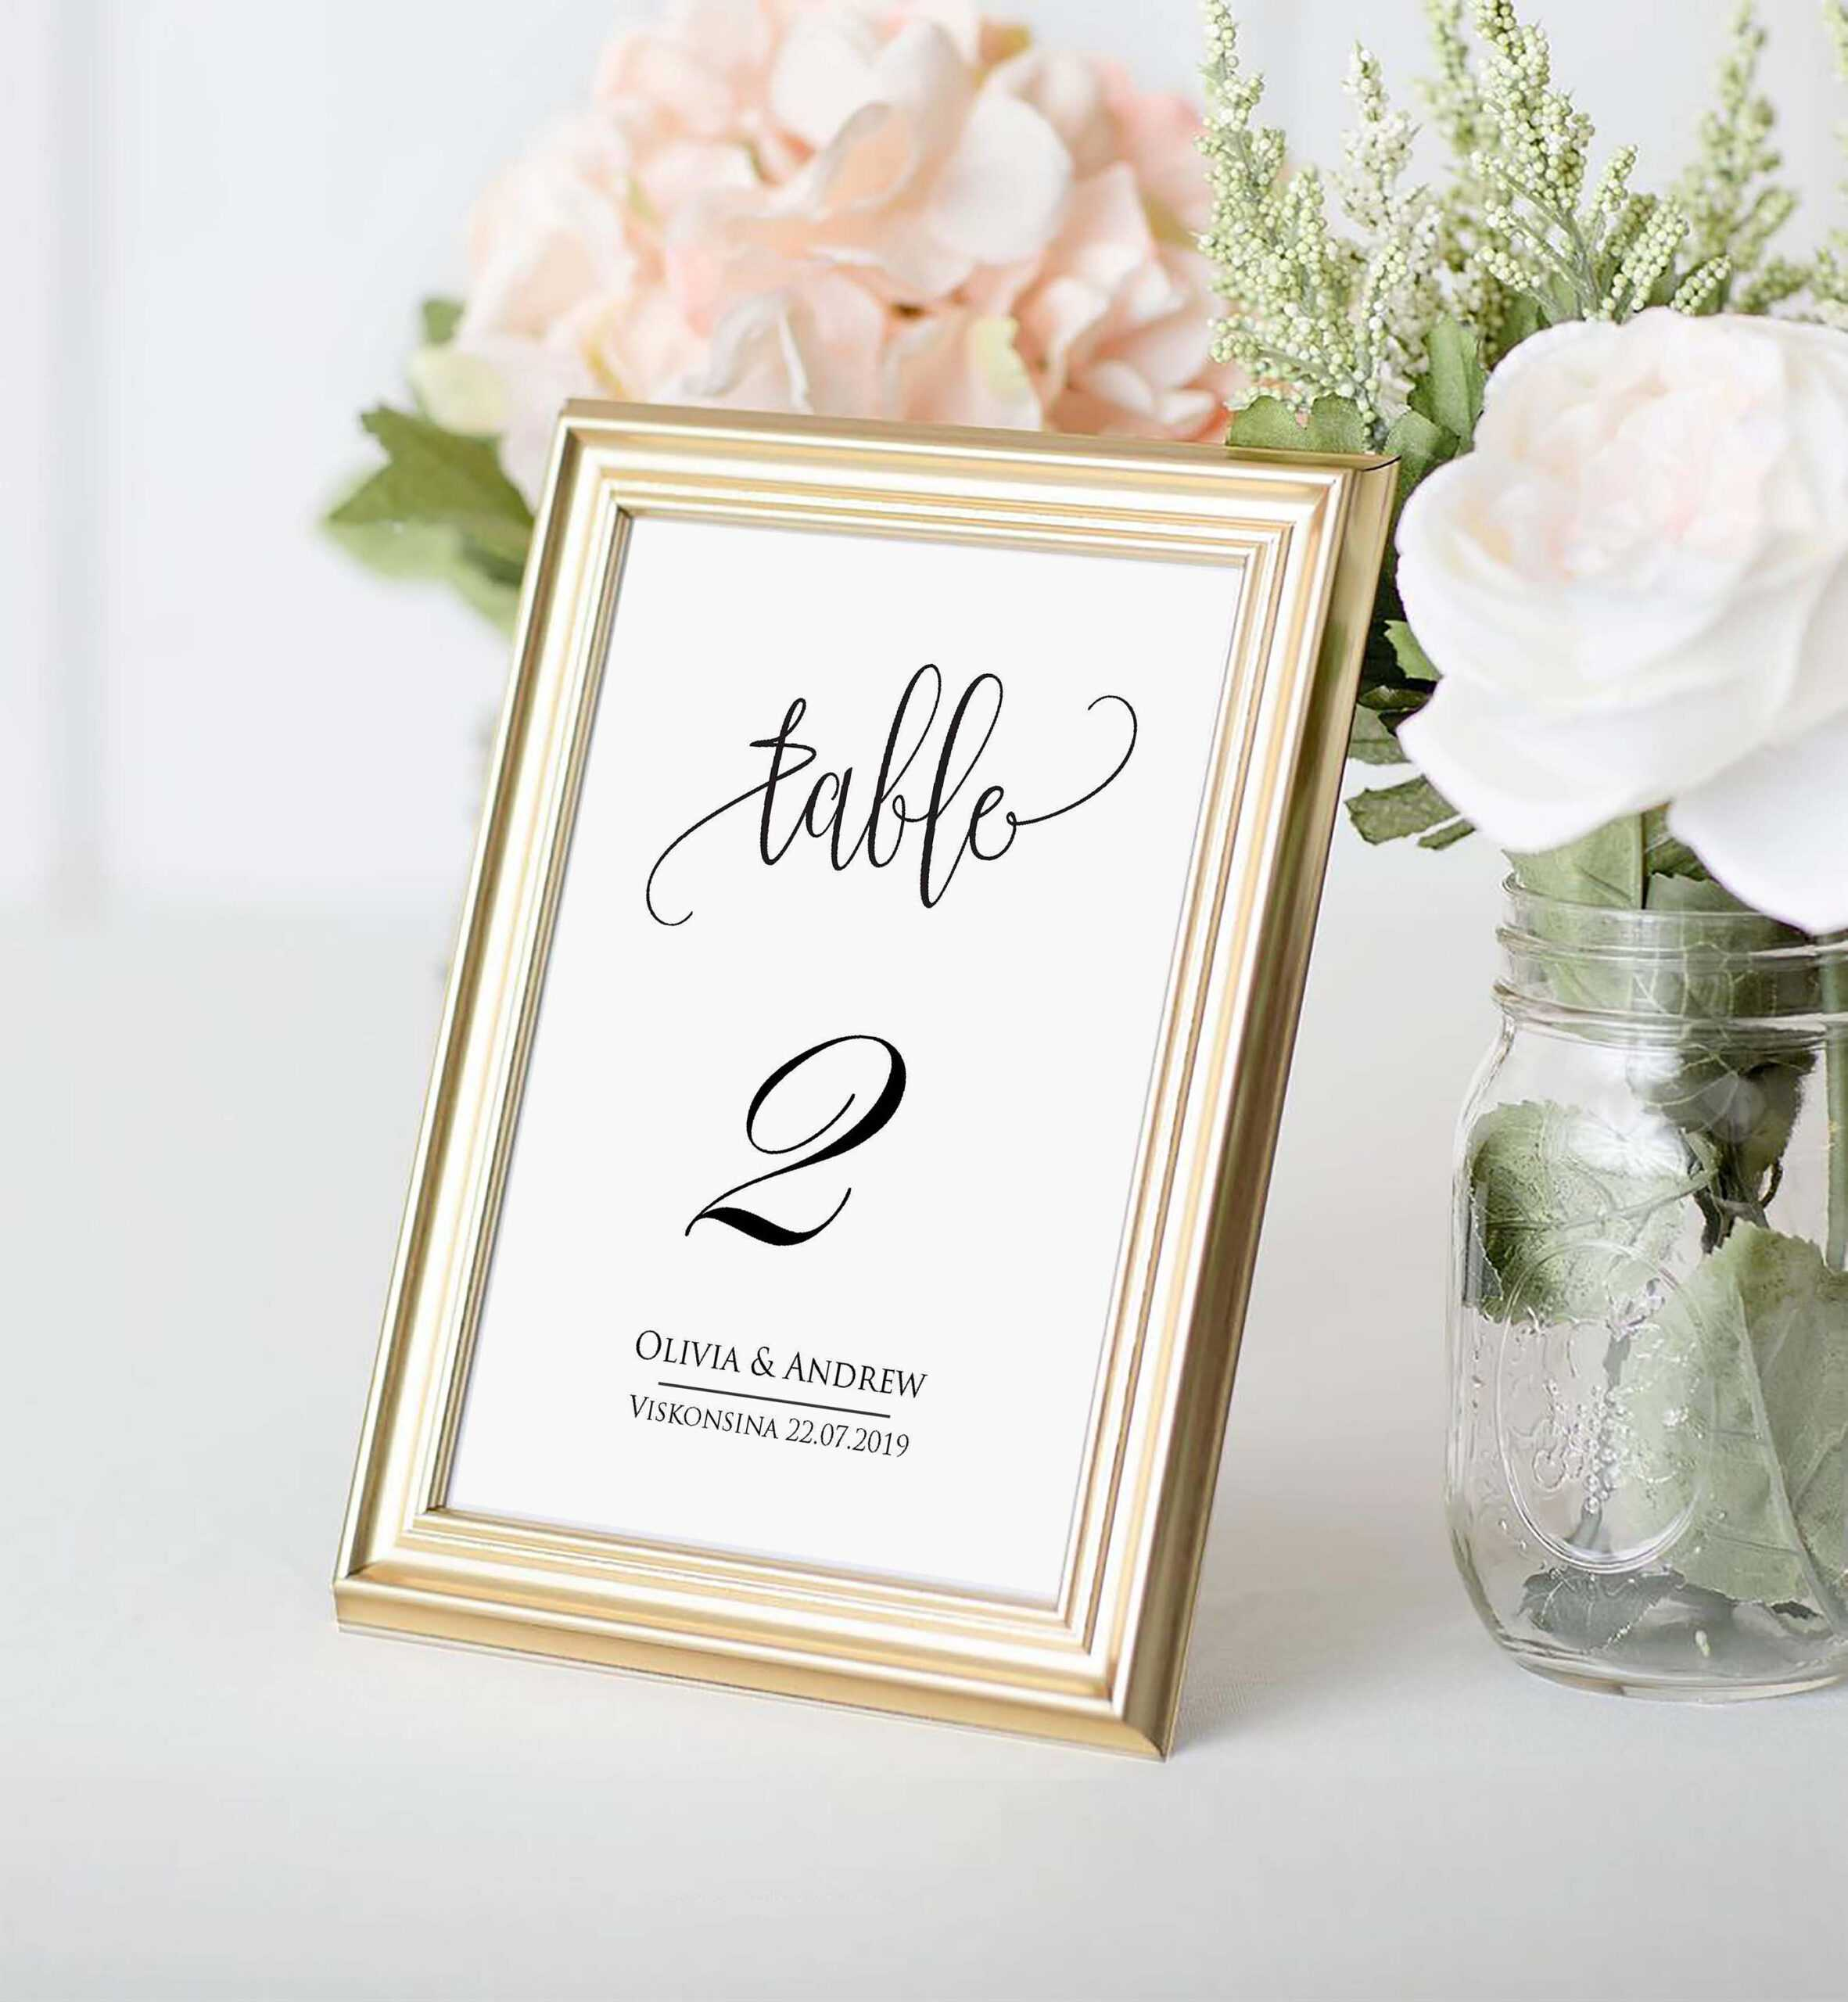 Table Number Card Template, Table Number Cards, Editable, Instant  Download,printable Wedding Table Number, Diy Reception Table Card Swtc114 With Table Number Cards Template